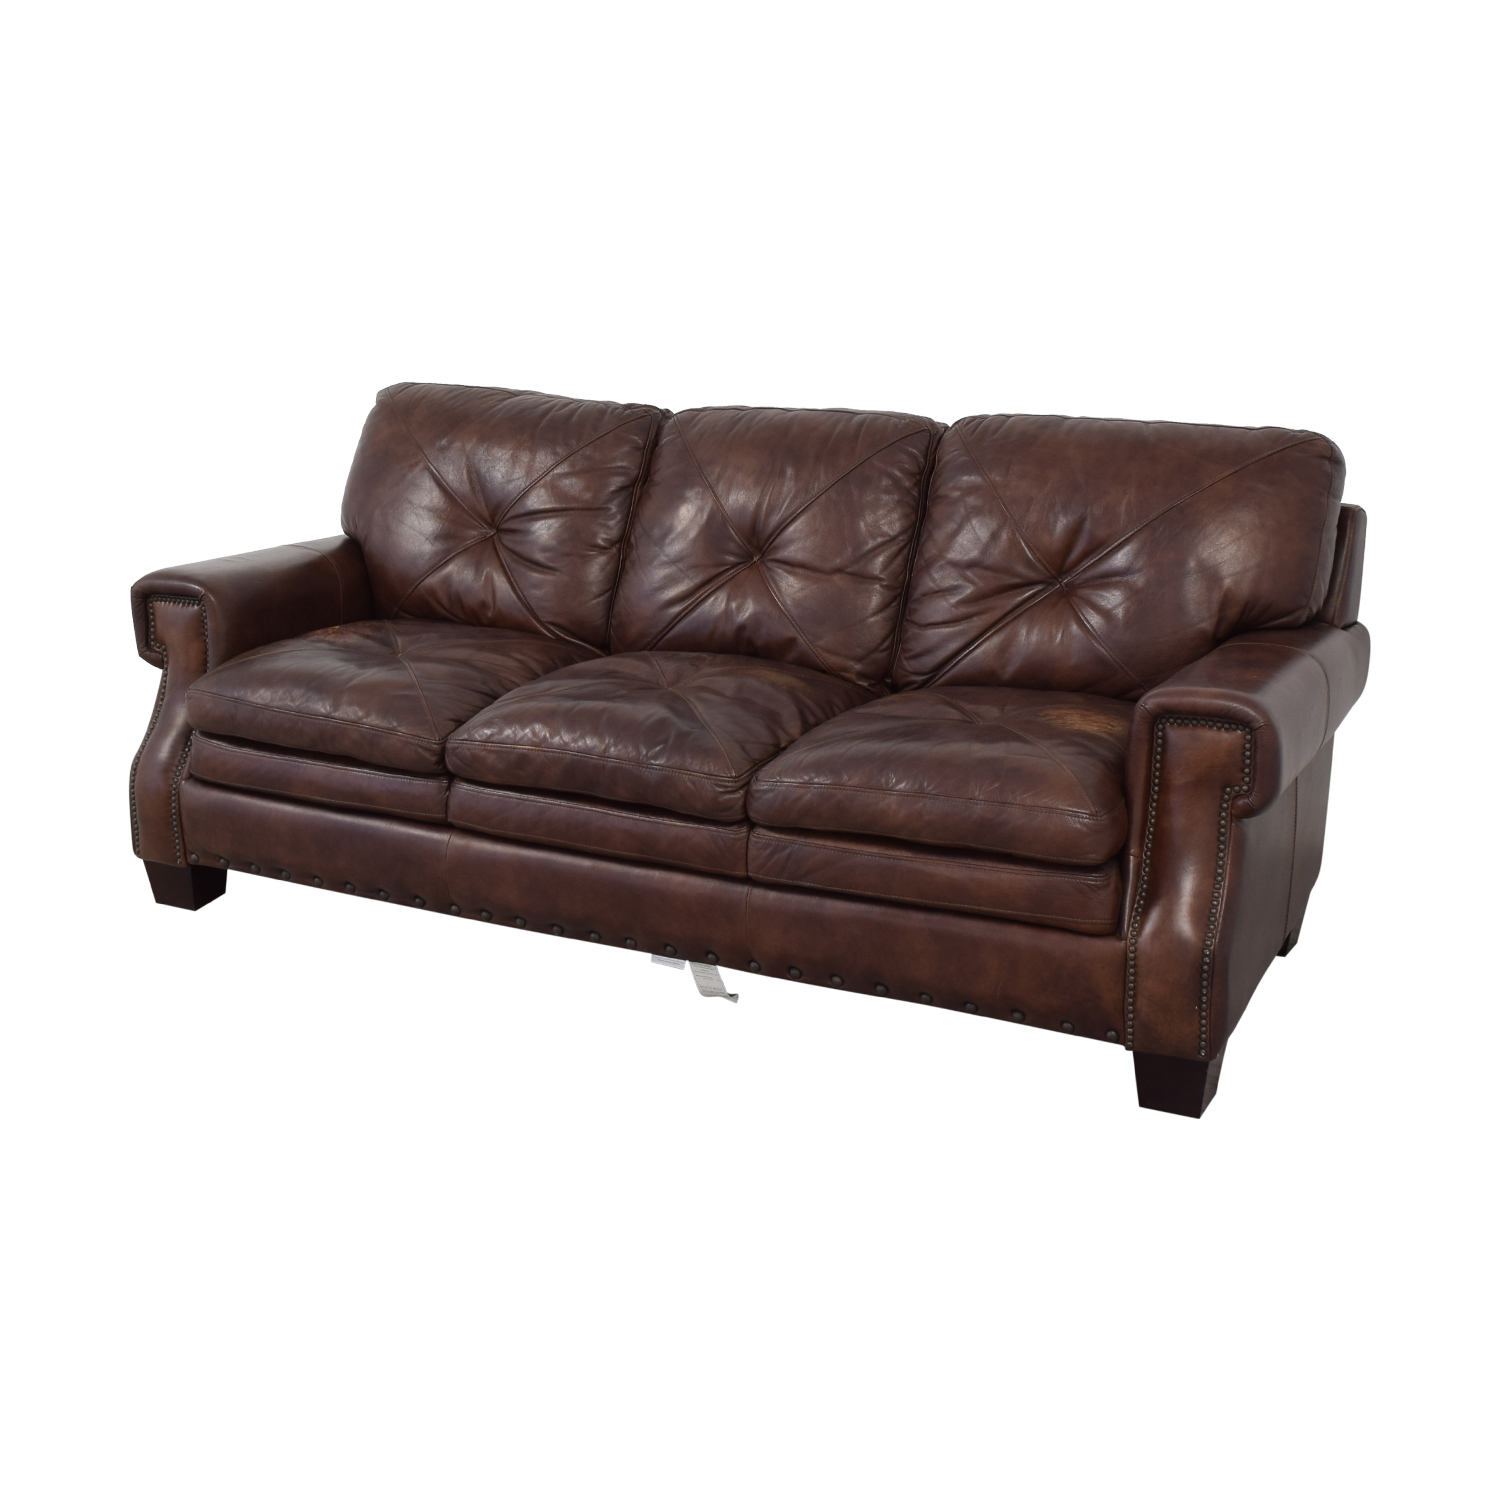 Bob's Discount Furniture Kennedy Leather Sofa sale